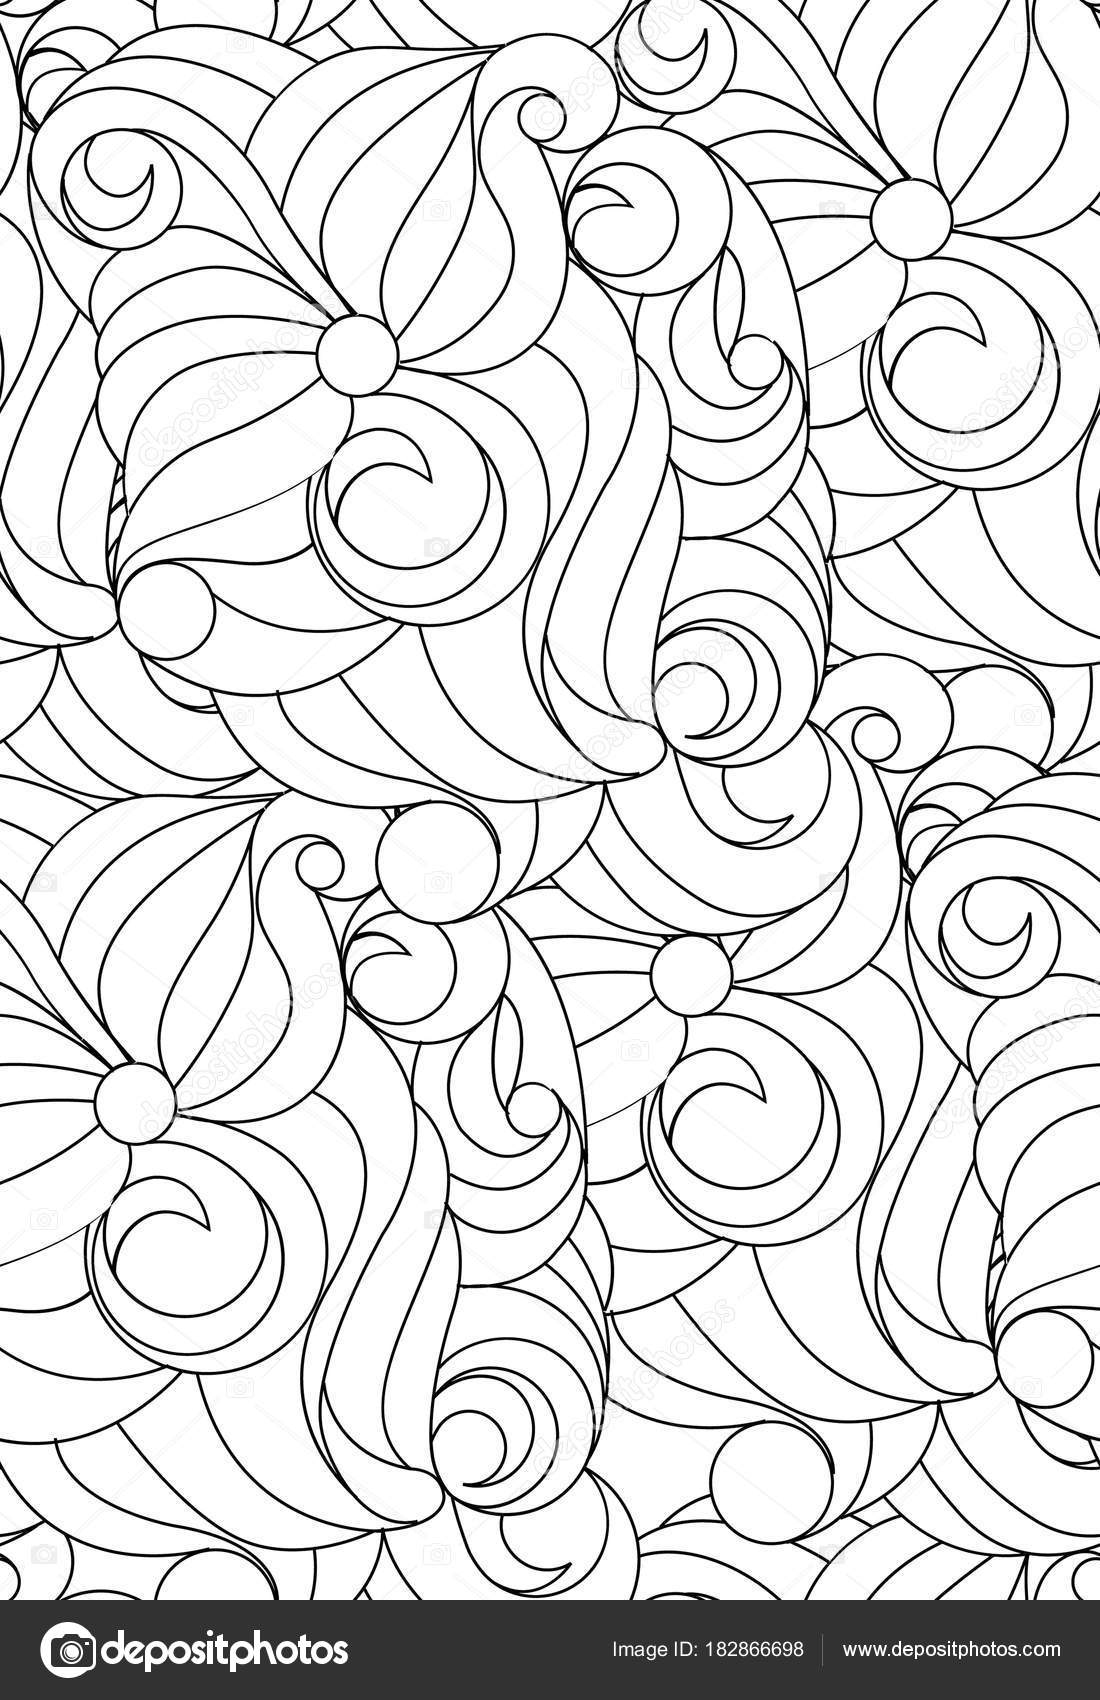 Black And White Abstract Pattern For Coloring Seamless Vector